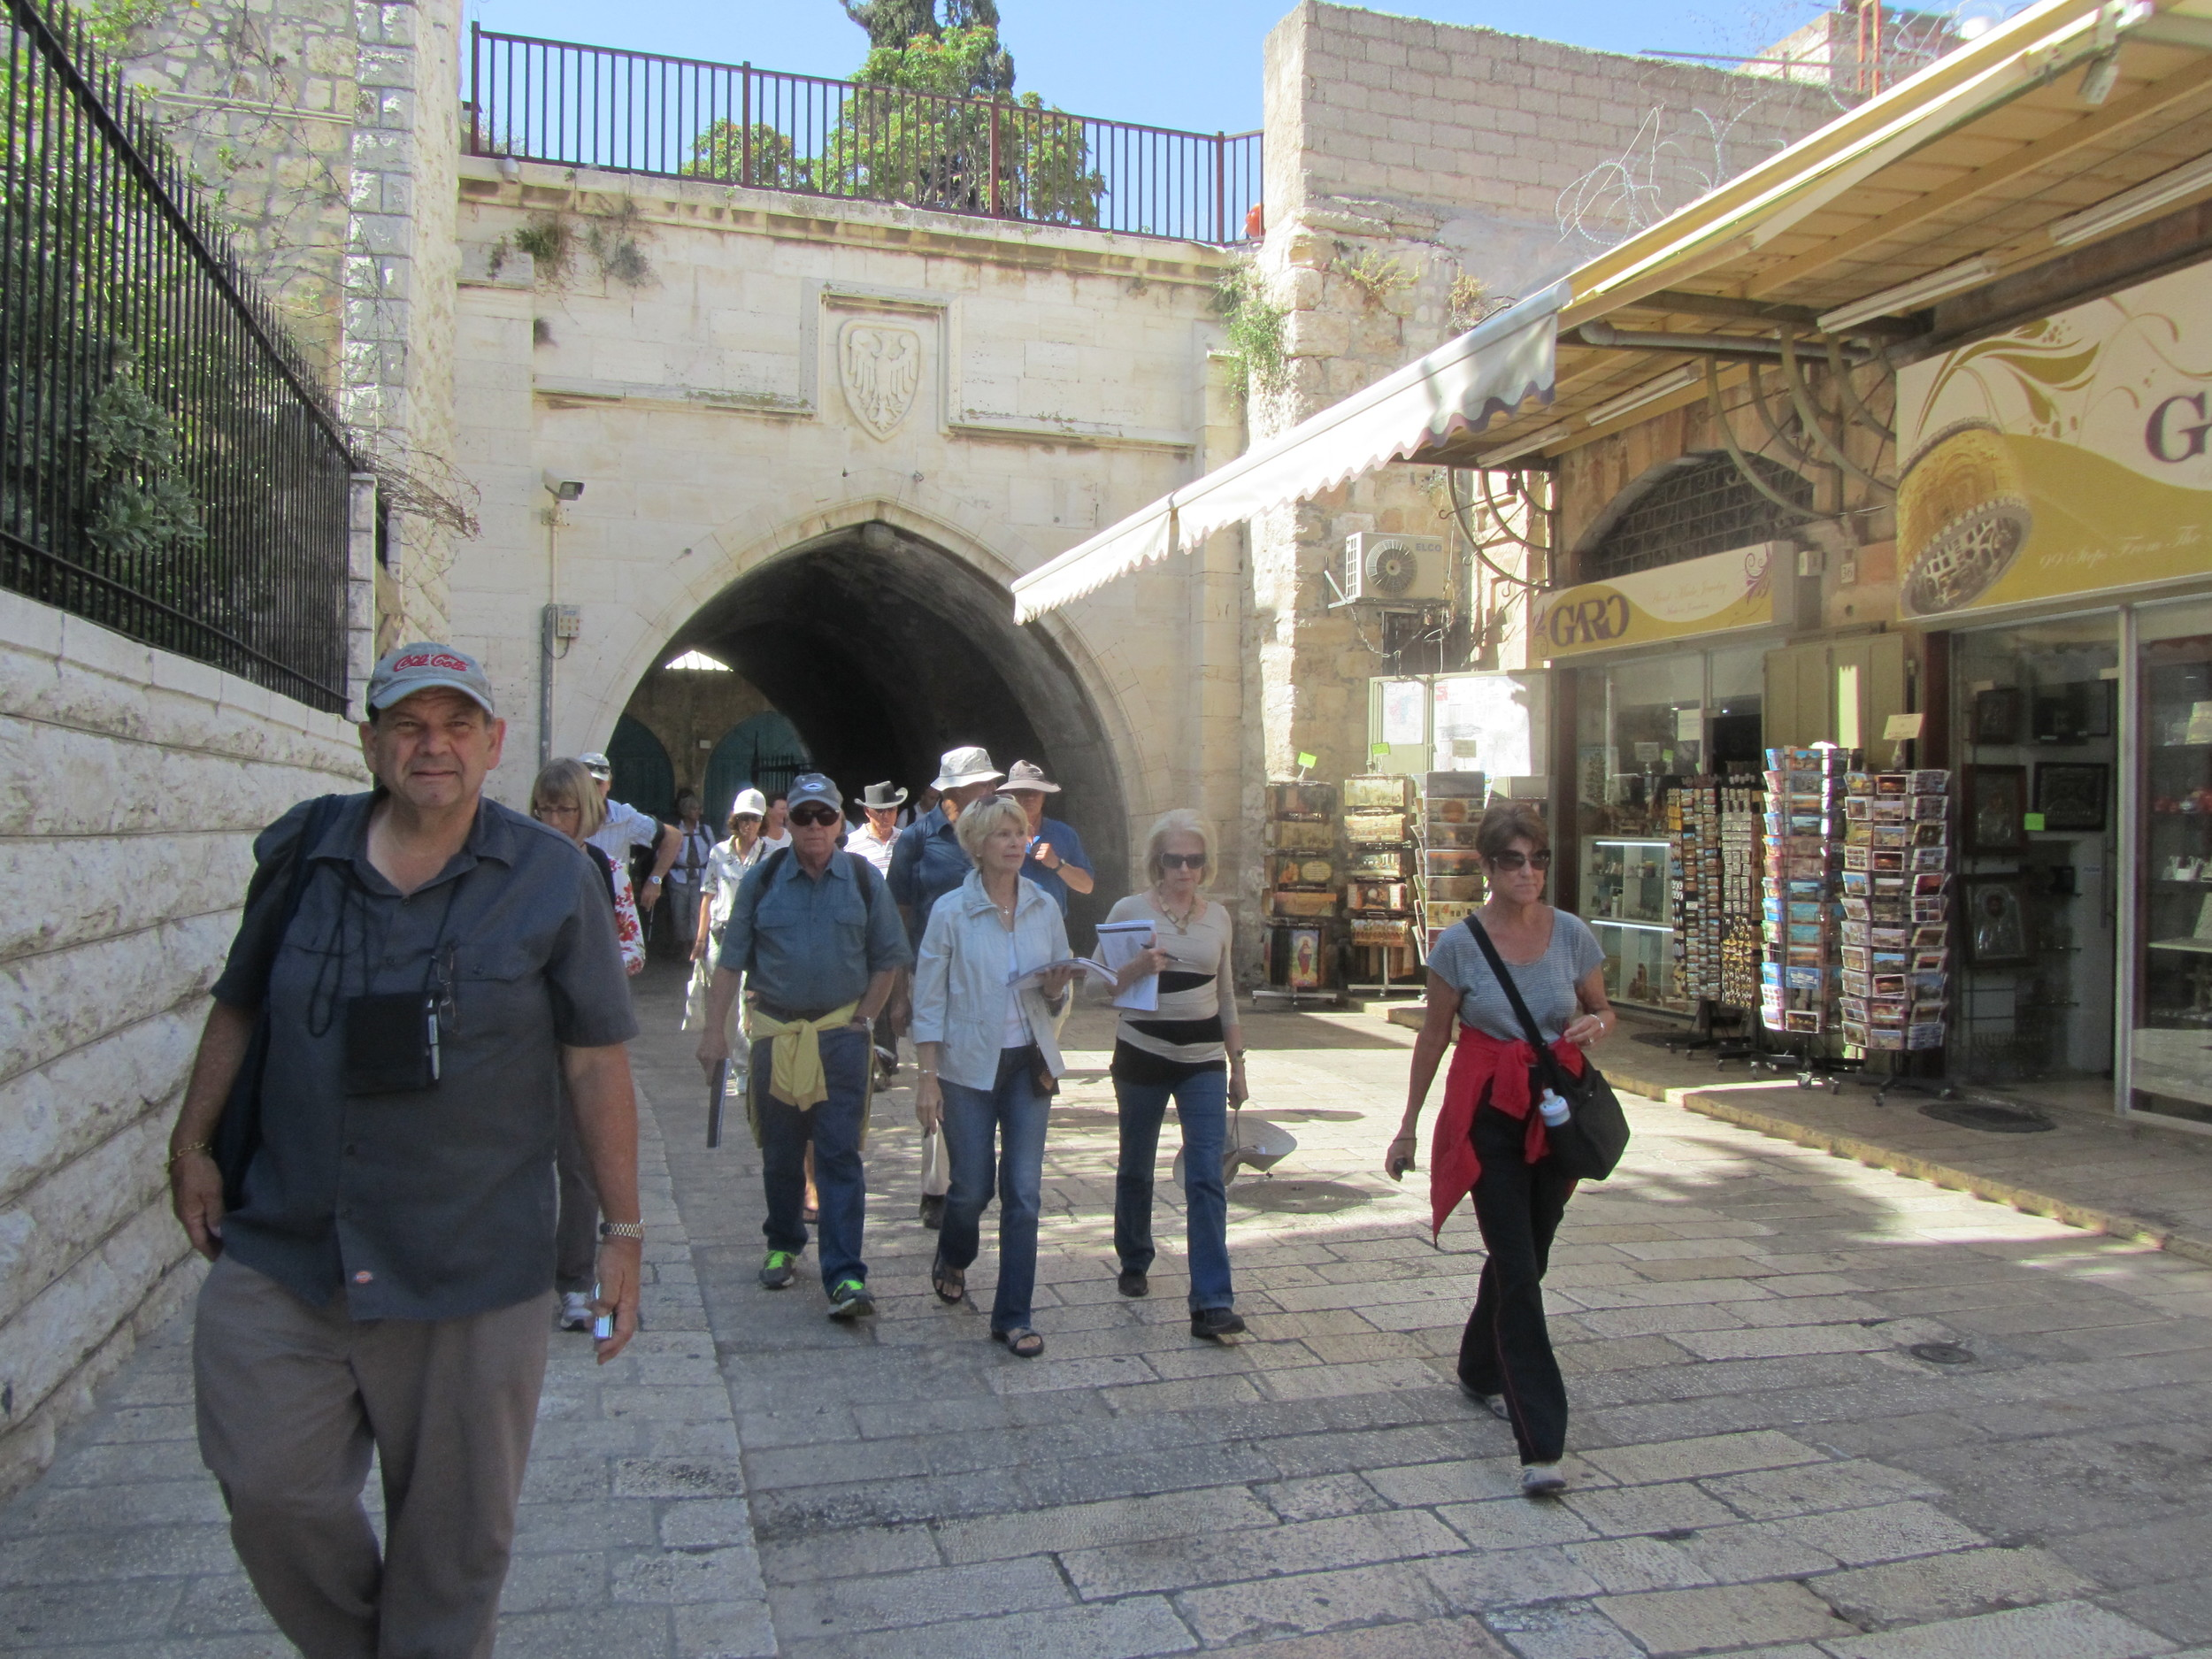 Following the Historical Route on Which Jesus Carried His Cross